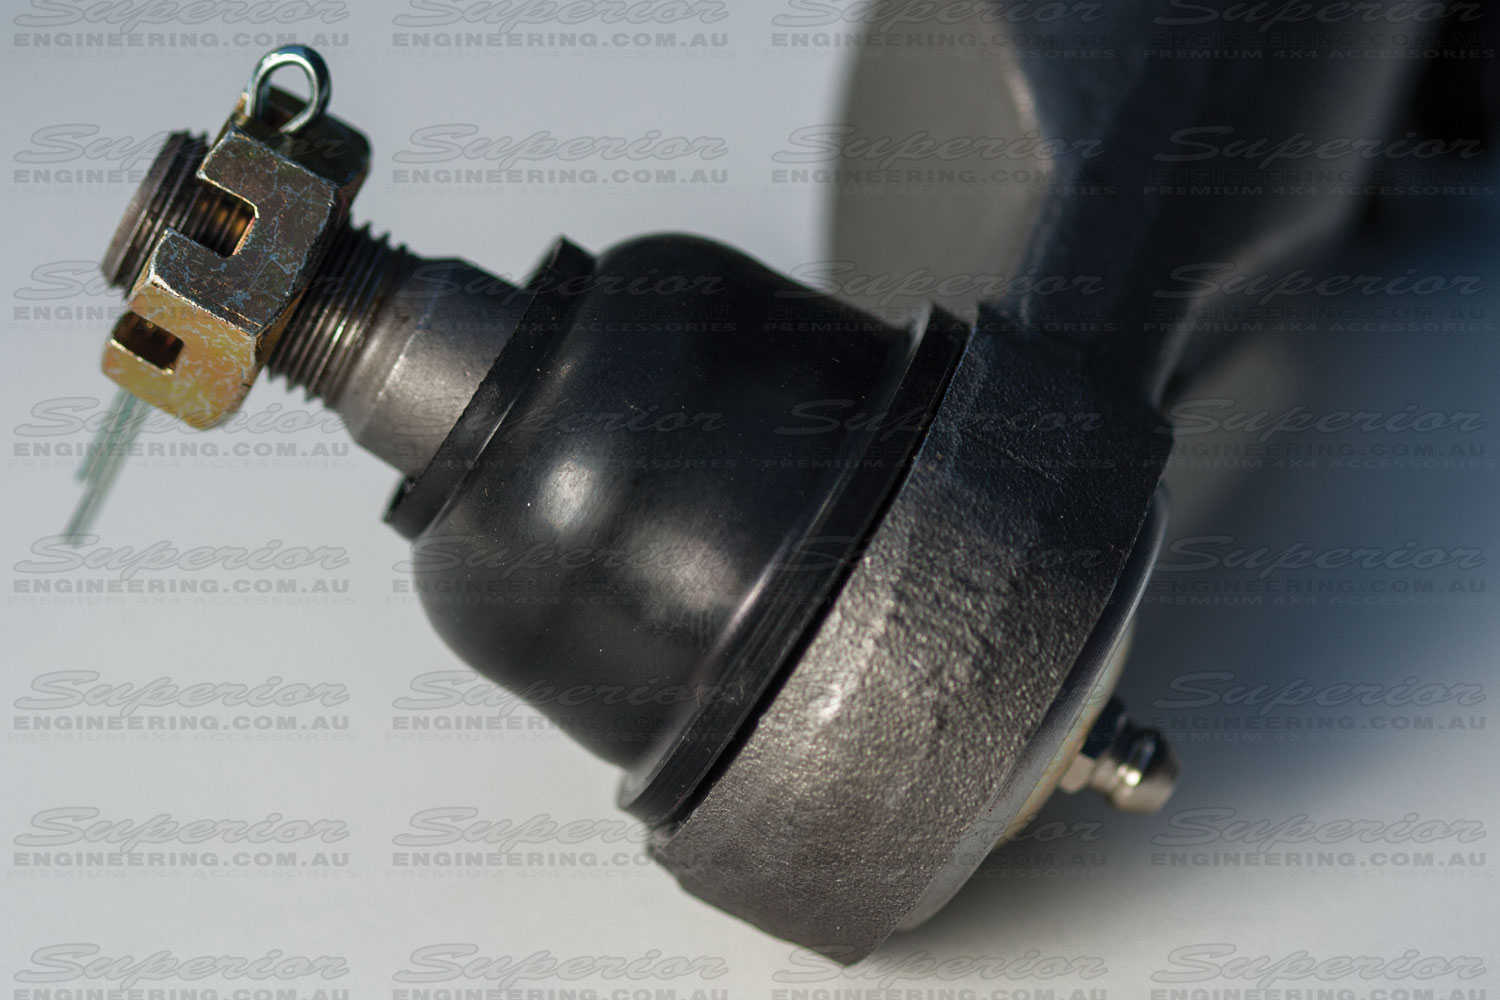 Tie Rod End Ball Joint Assembly and Rubber Boot Seal